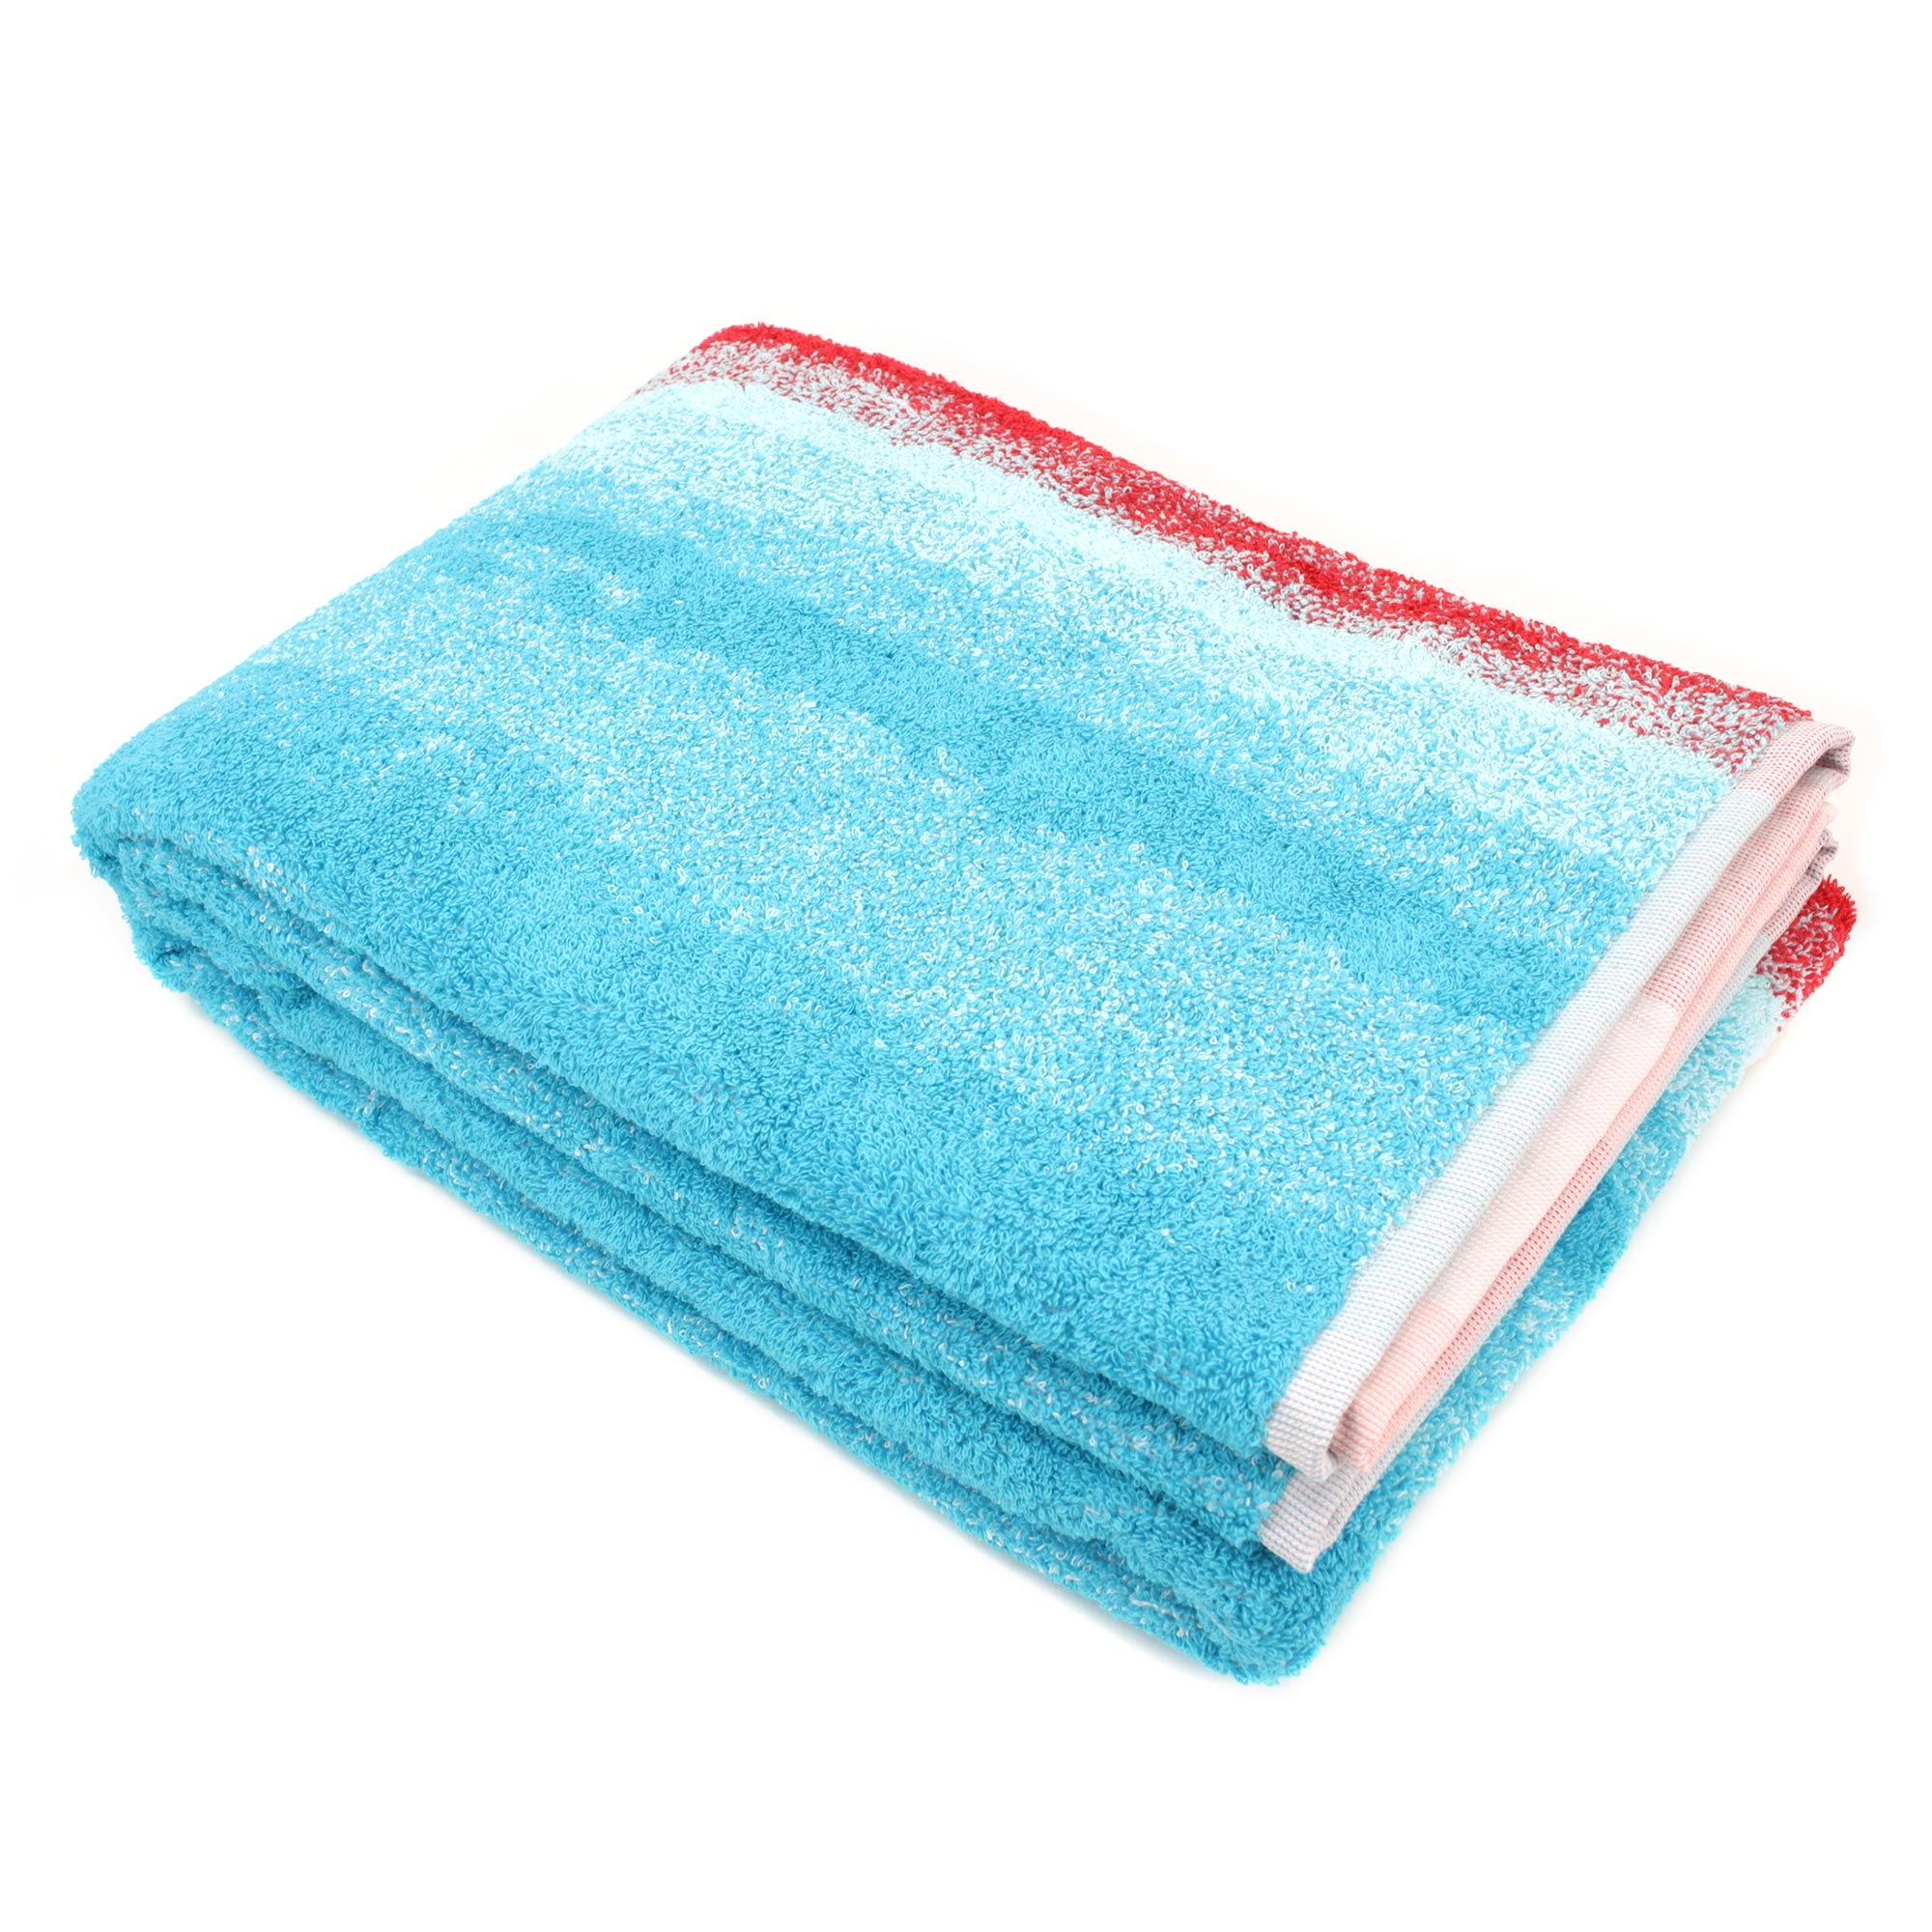 drap de bain 100x150 100 coton 500g m2 kodac rayures rouge bleu ebay. Black Bedroom Furniture Sets. Home Design Ideas